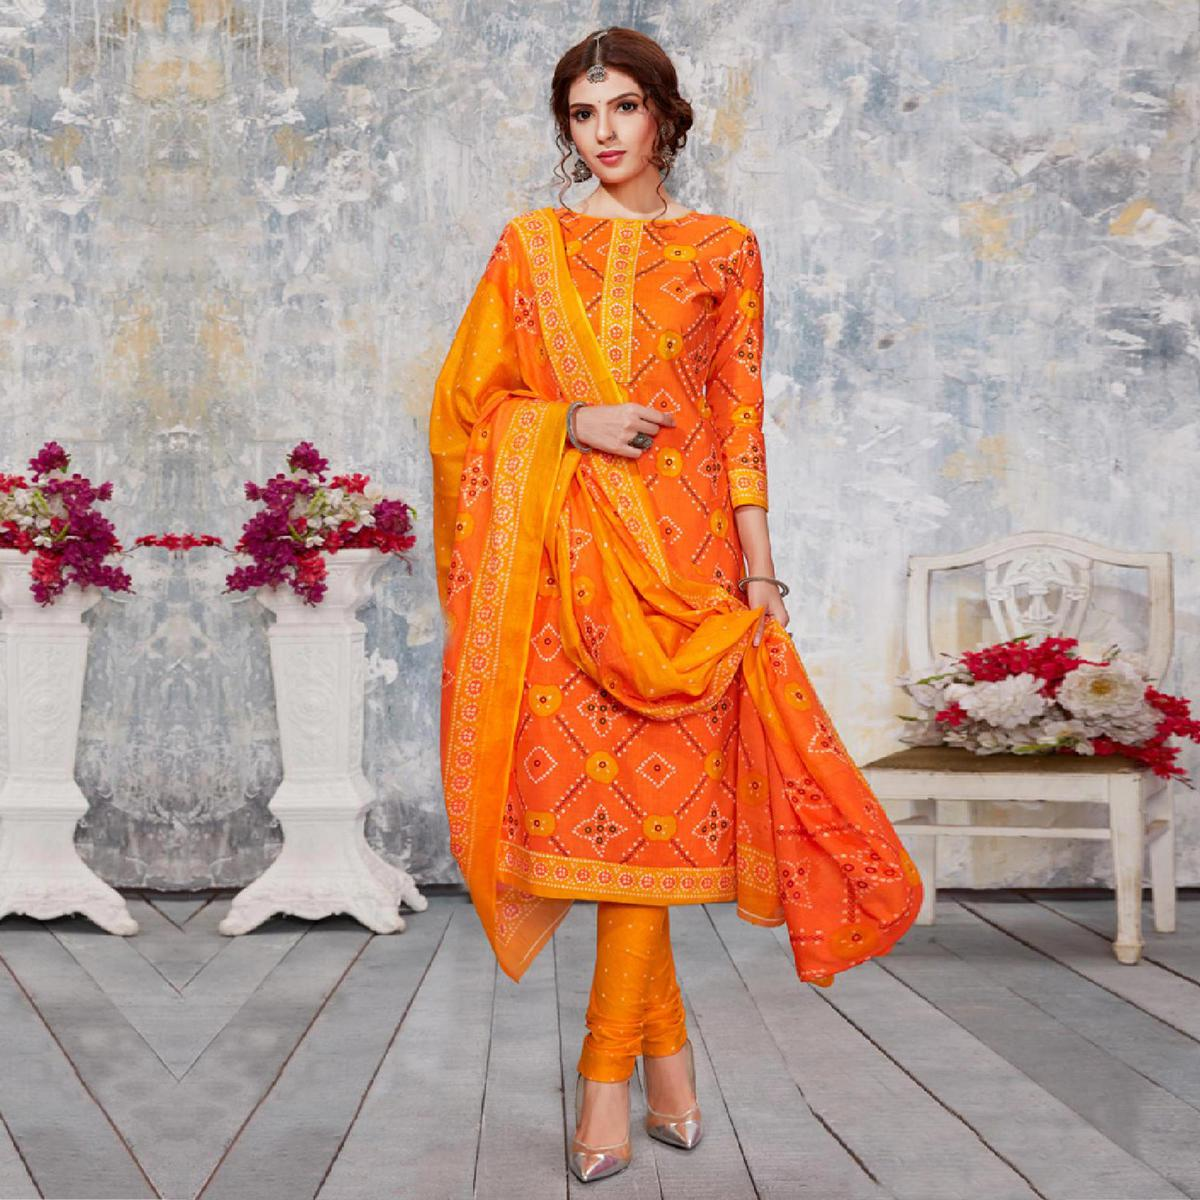 Sophisticated Orange Colored Casual Wear Bandhani Printed Pure Cotton Dress Material